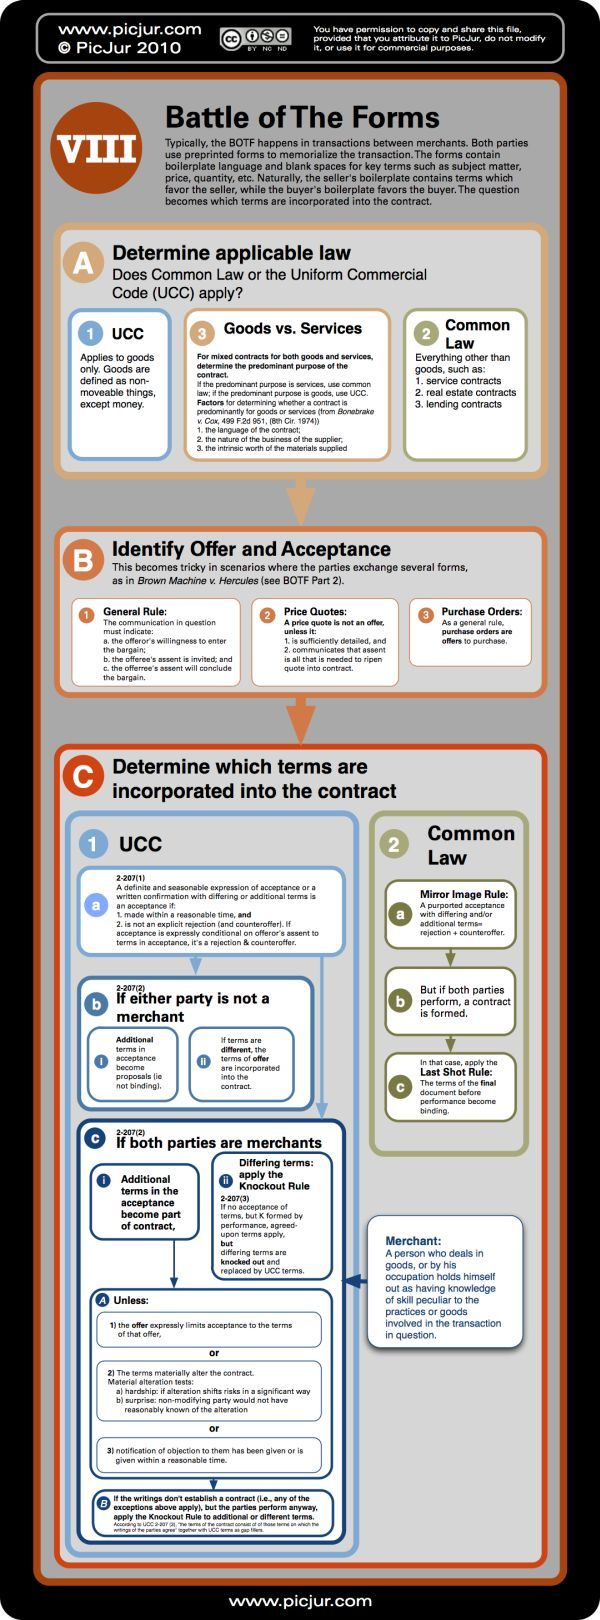 Contracts law offer and acceptance 4 law school - Battle Of The Forms Contract Law